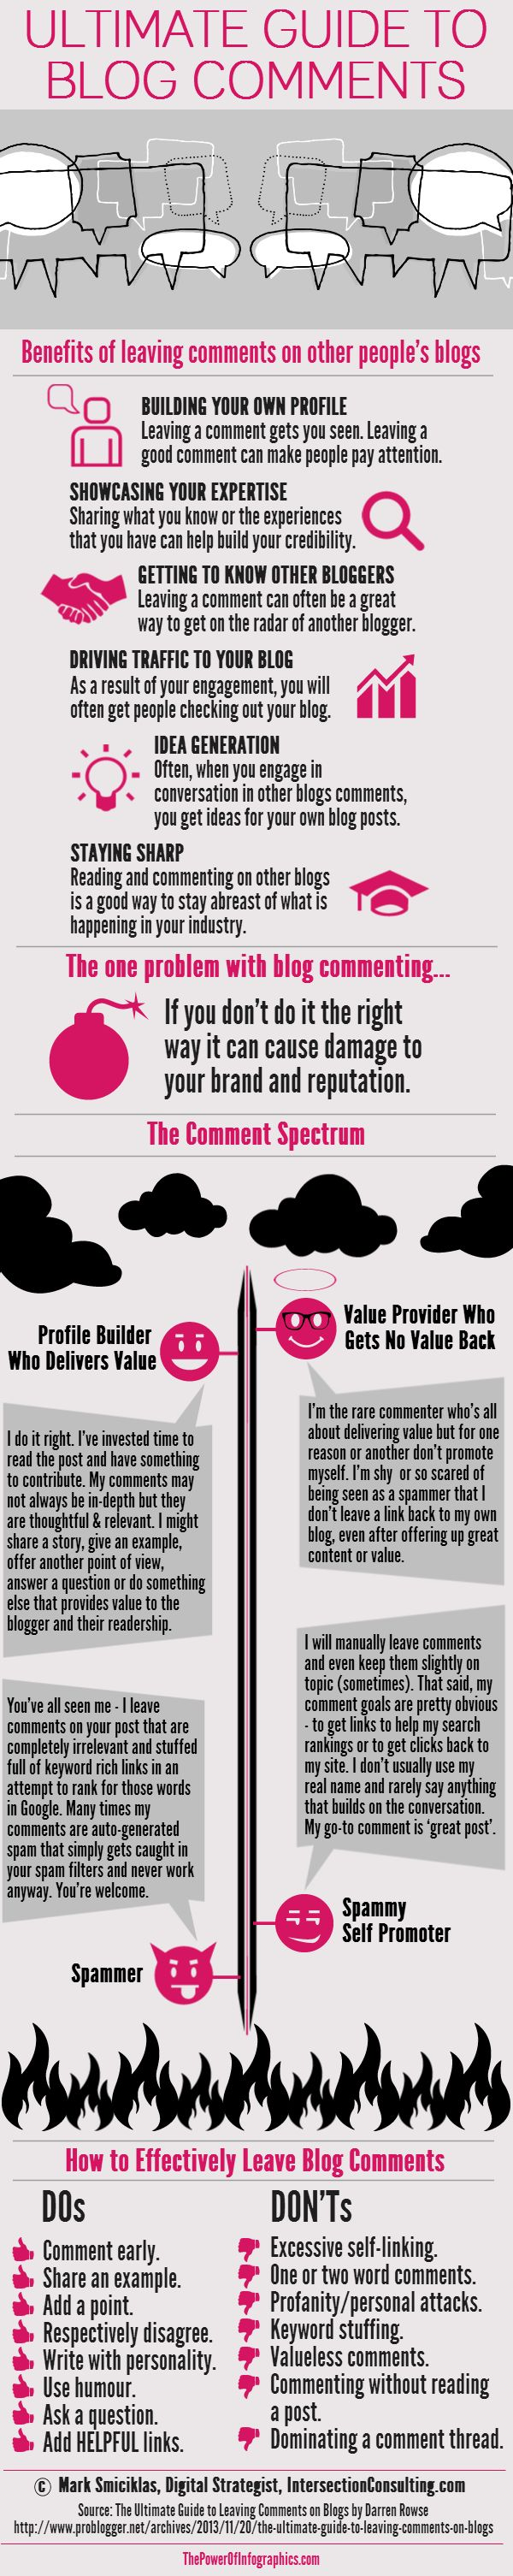 Ultimate Guide to #Blog Comments. #Infographic